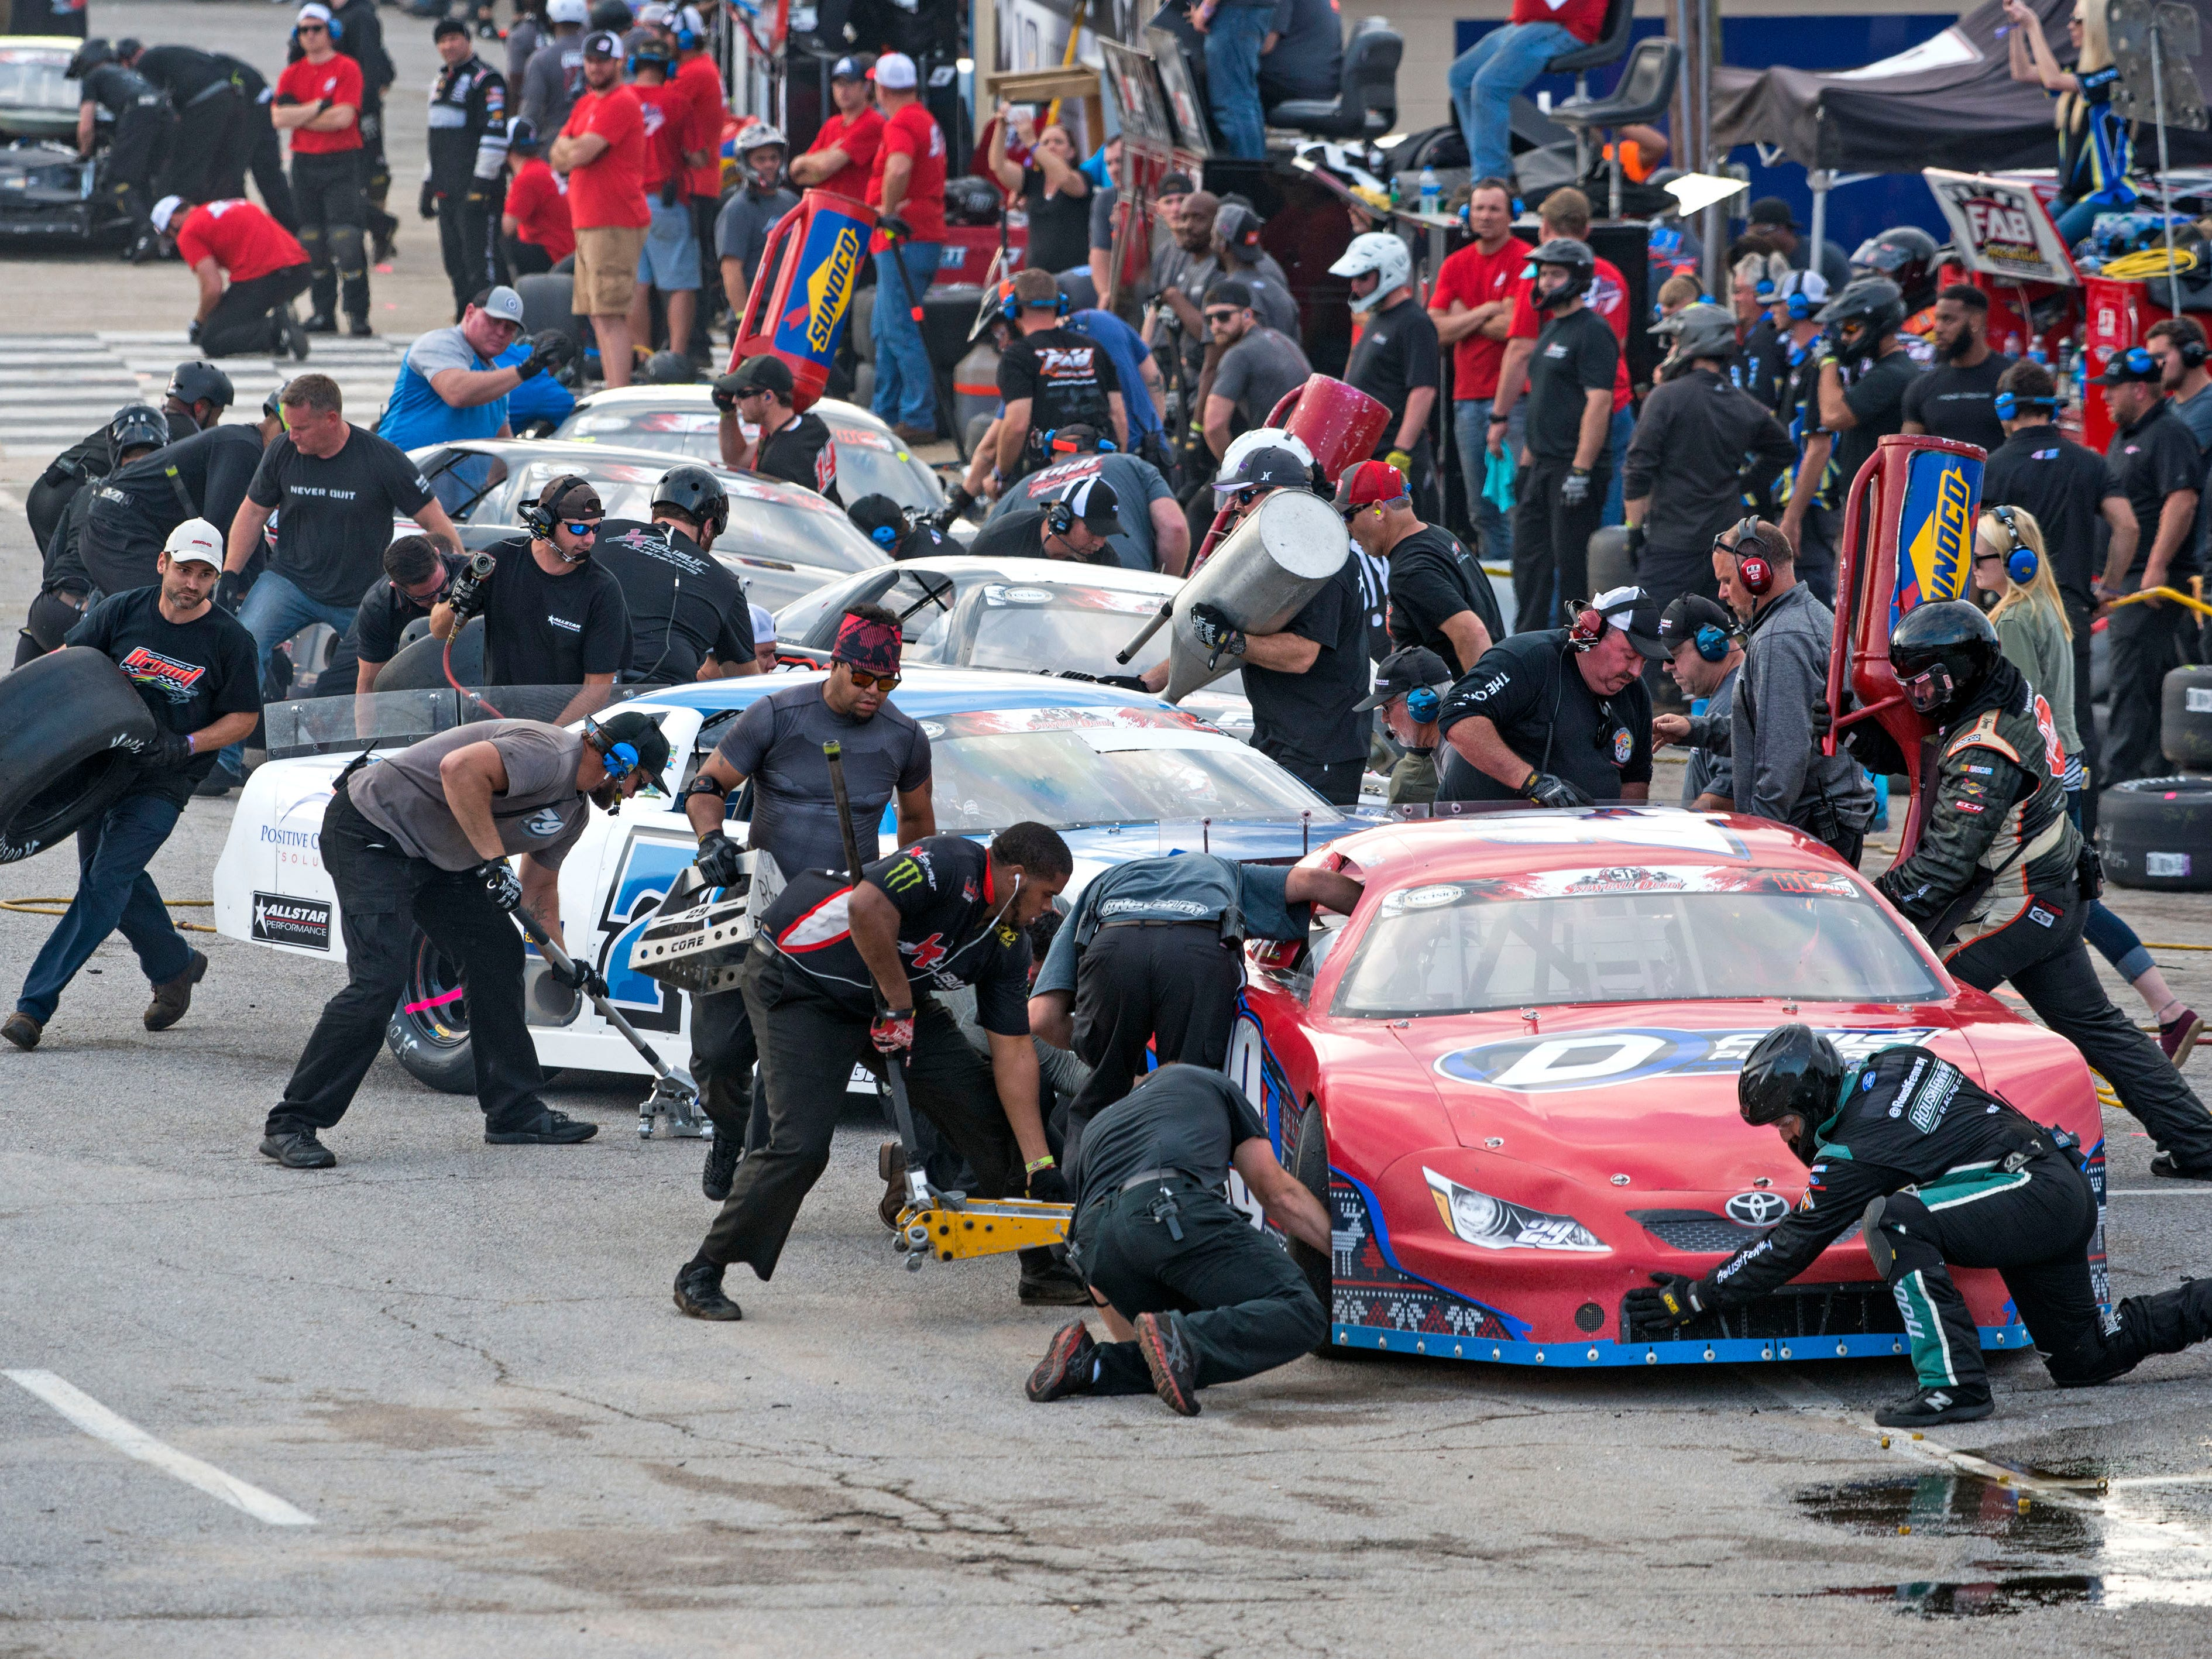 Cars come in for a pitt stop Sunday, December 2, 2018 during the 51st annual Snowball Derby at Five Flags Speedway.